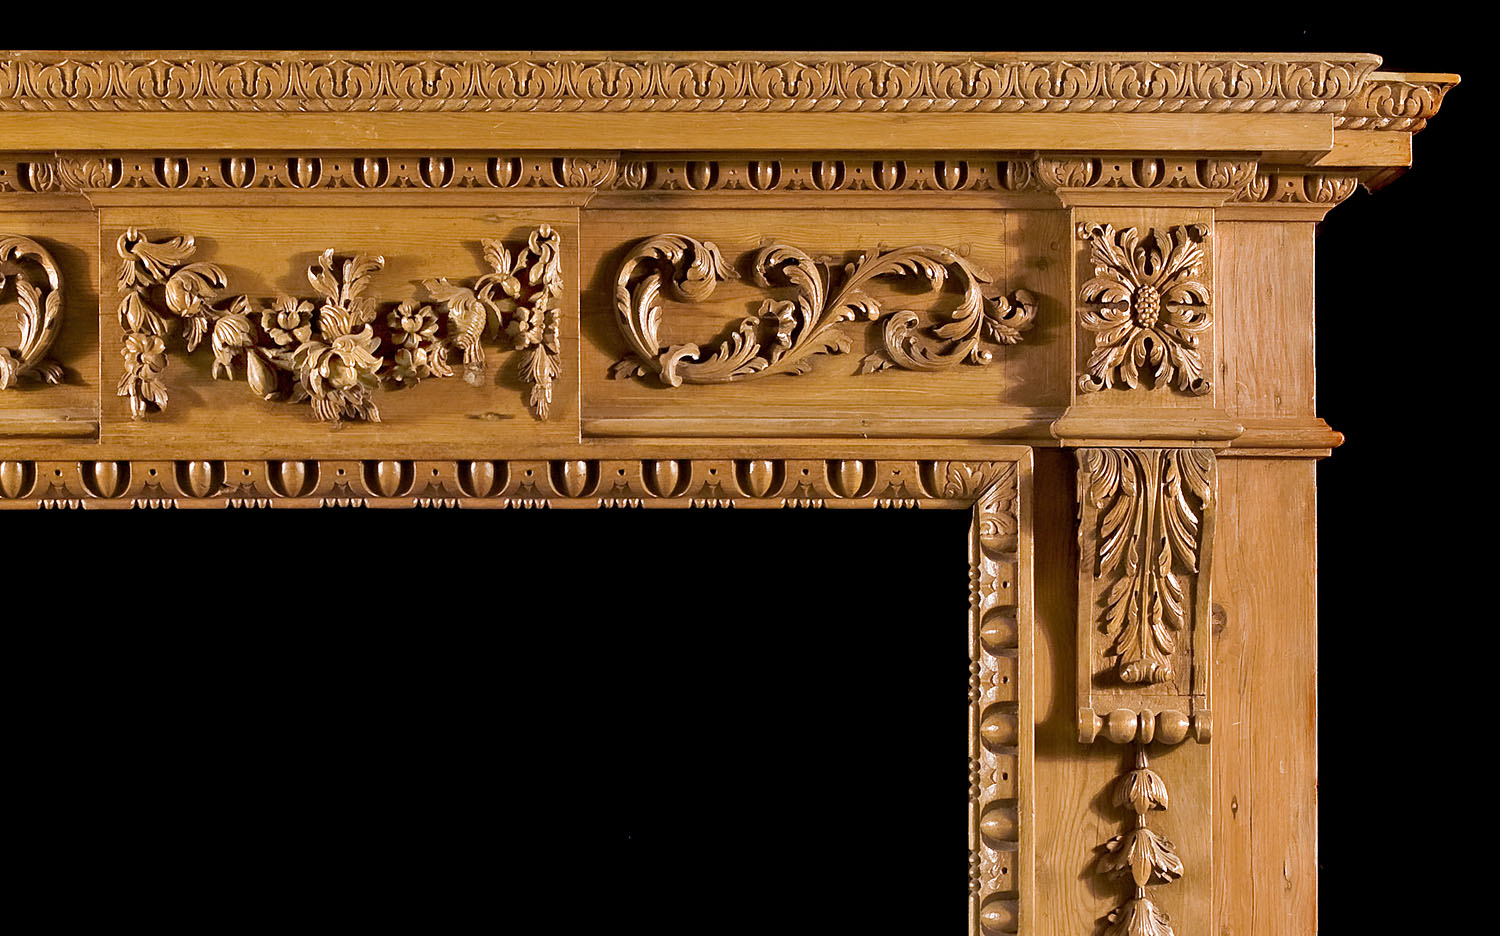 An ornately carved antique pine Neo Classical style fireplace surround